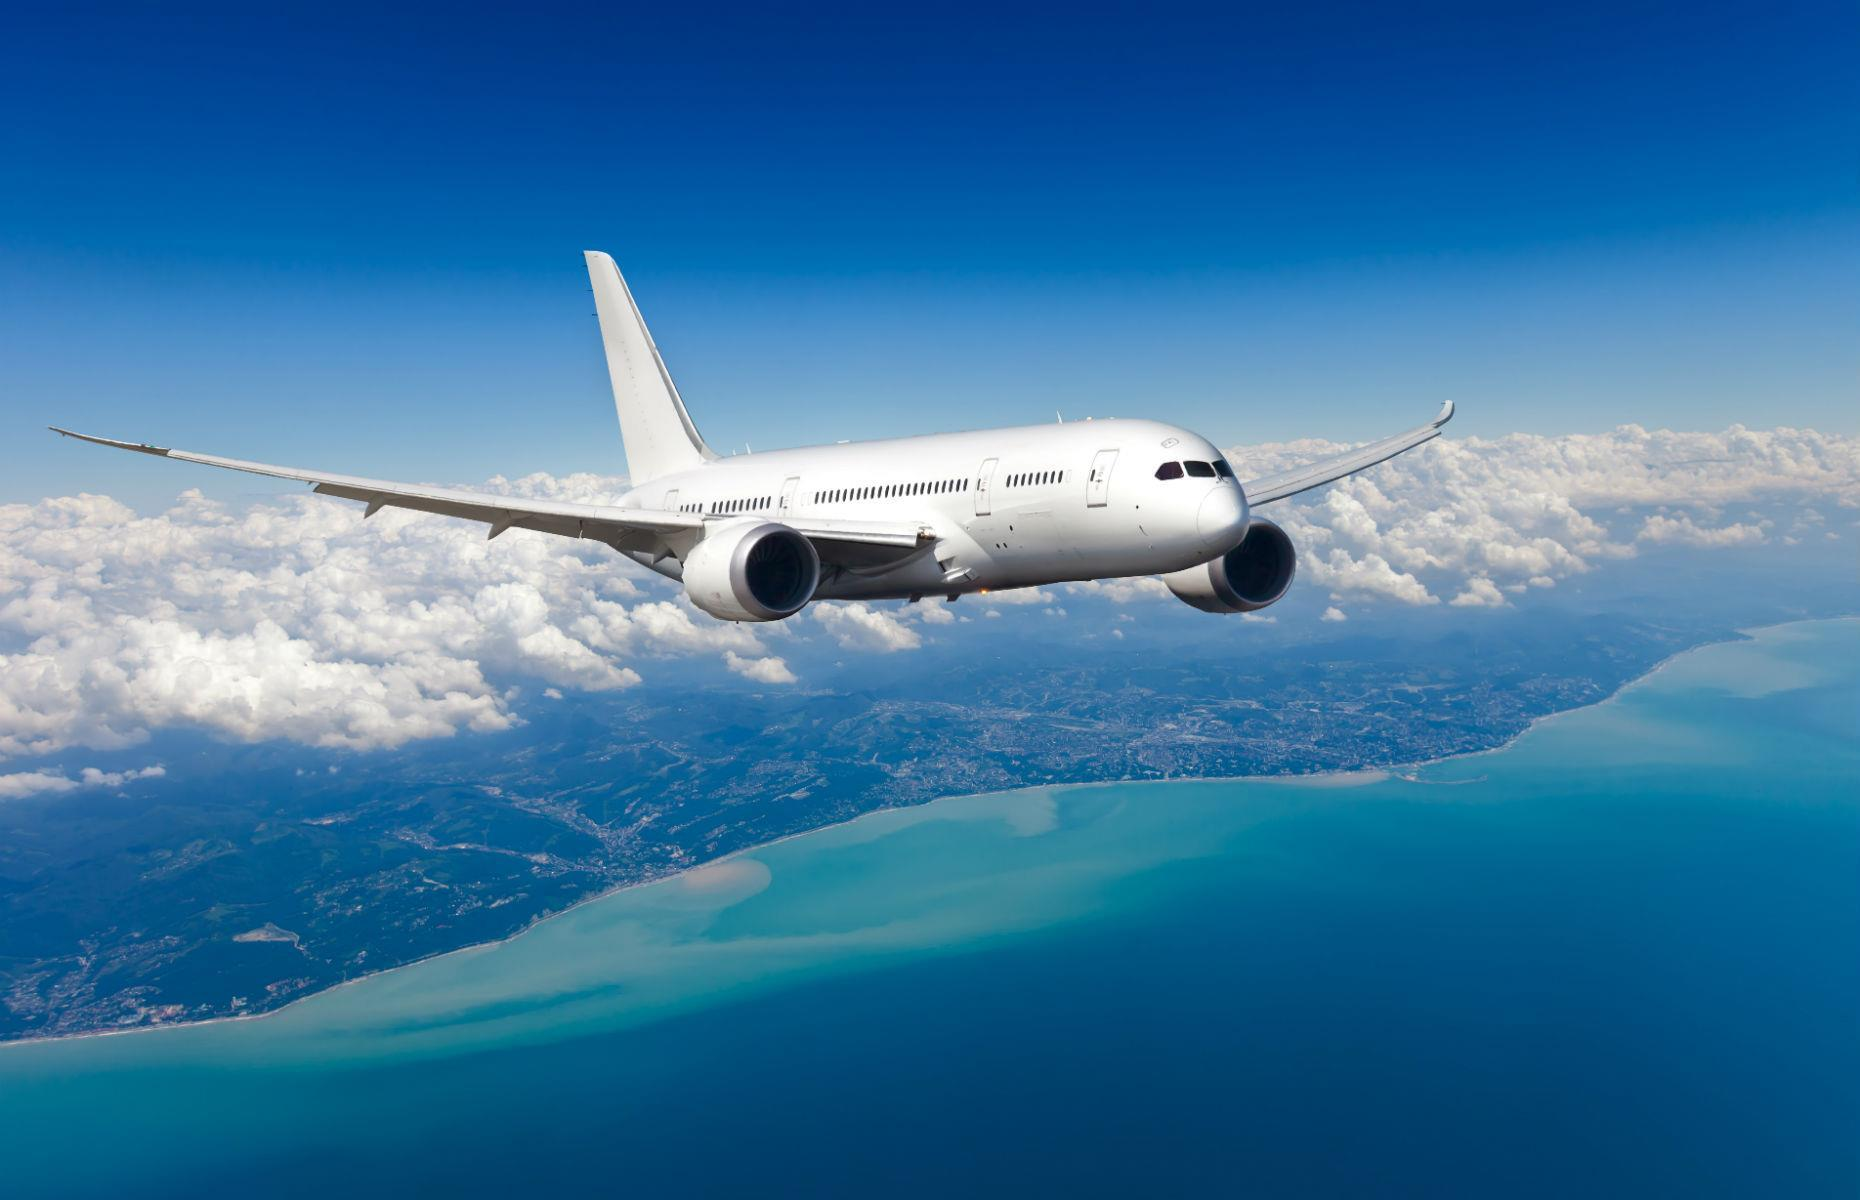 Slide 49 of 63: If money is no object, a basic Boeing jetliner starts at a mere $82.4 million (£64.1m). However, for those with deep pockets, the 787 Dreamliner starts at $229.5 million (£178.5m). Costs vary on the number of aisles you want, seats and how much fuel the plane can carry. Better start saving now.